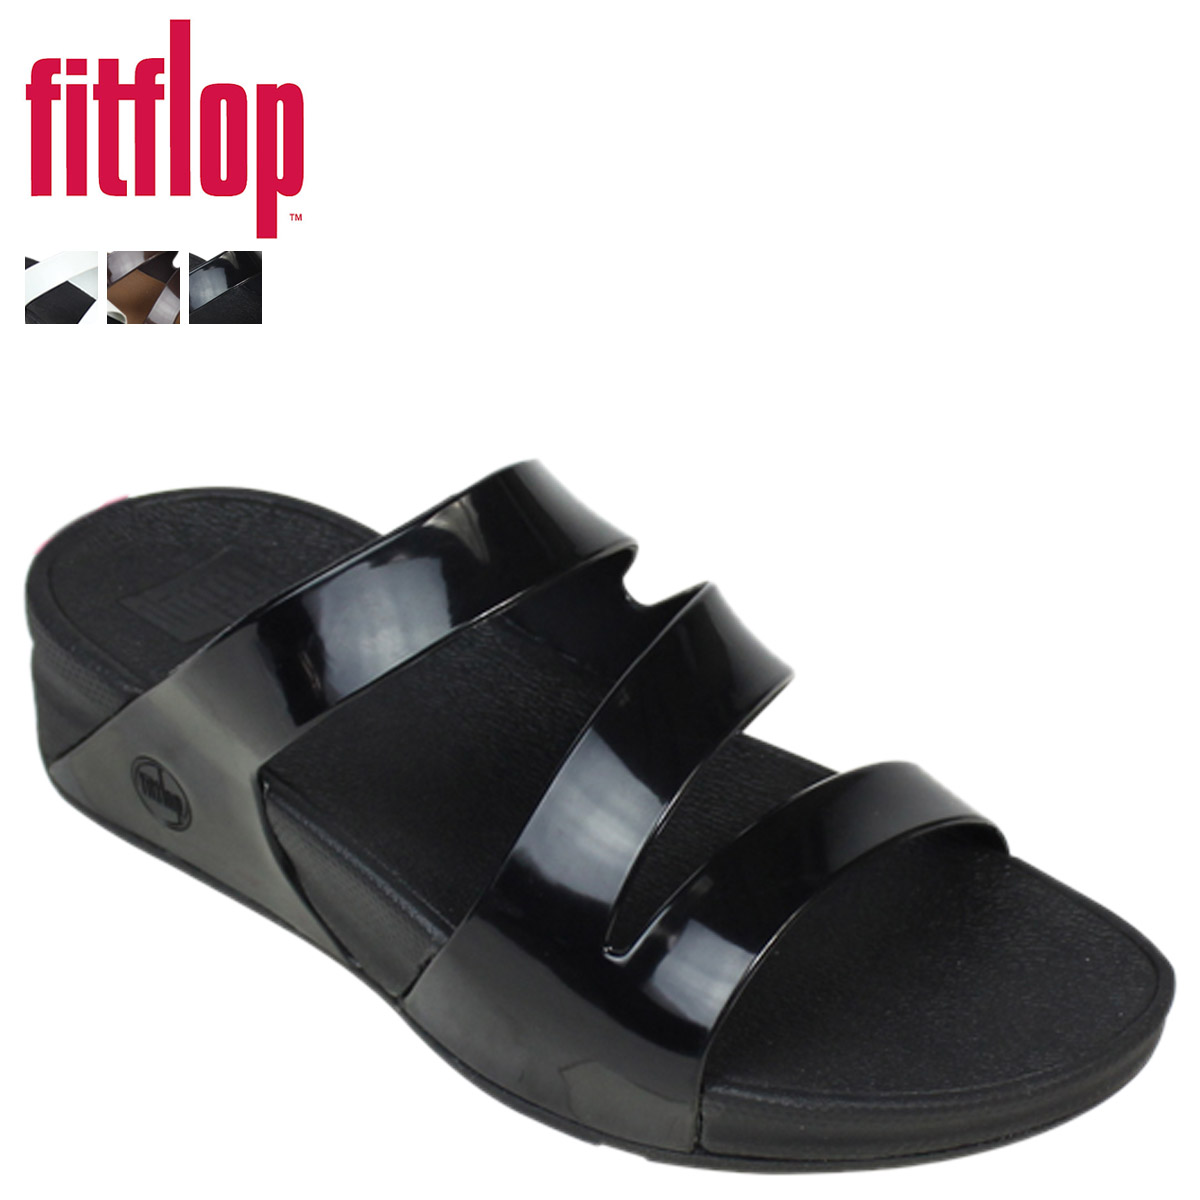 7bbd25ae5262 ALLSPORTS  Fit flops FitFlop women s Super jelly twist sandal ...